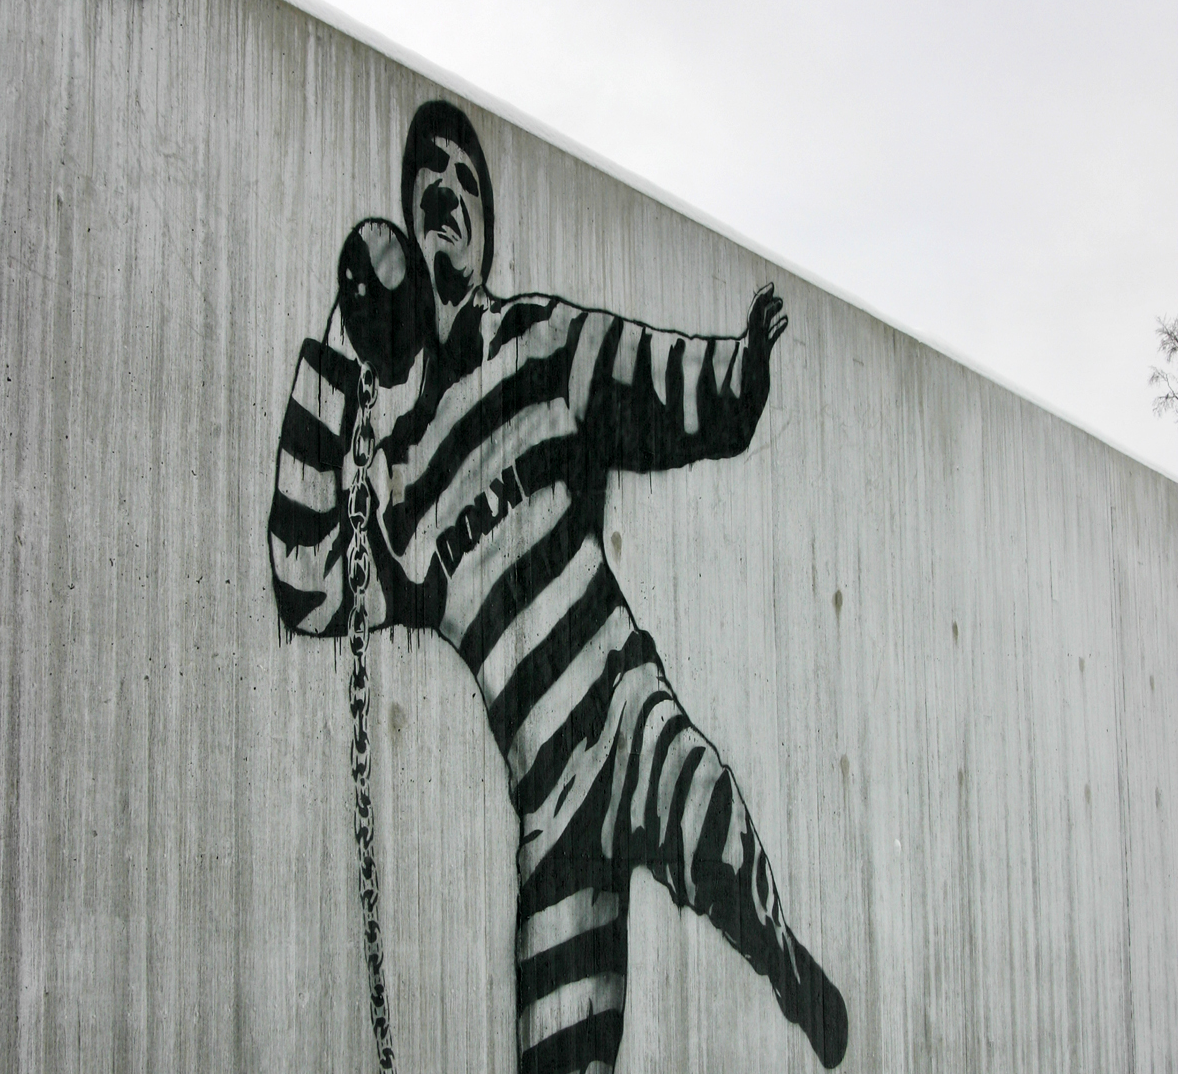 Graffiti by Dolk in Halden Prison -Wikimedia Commons